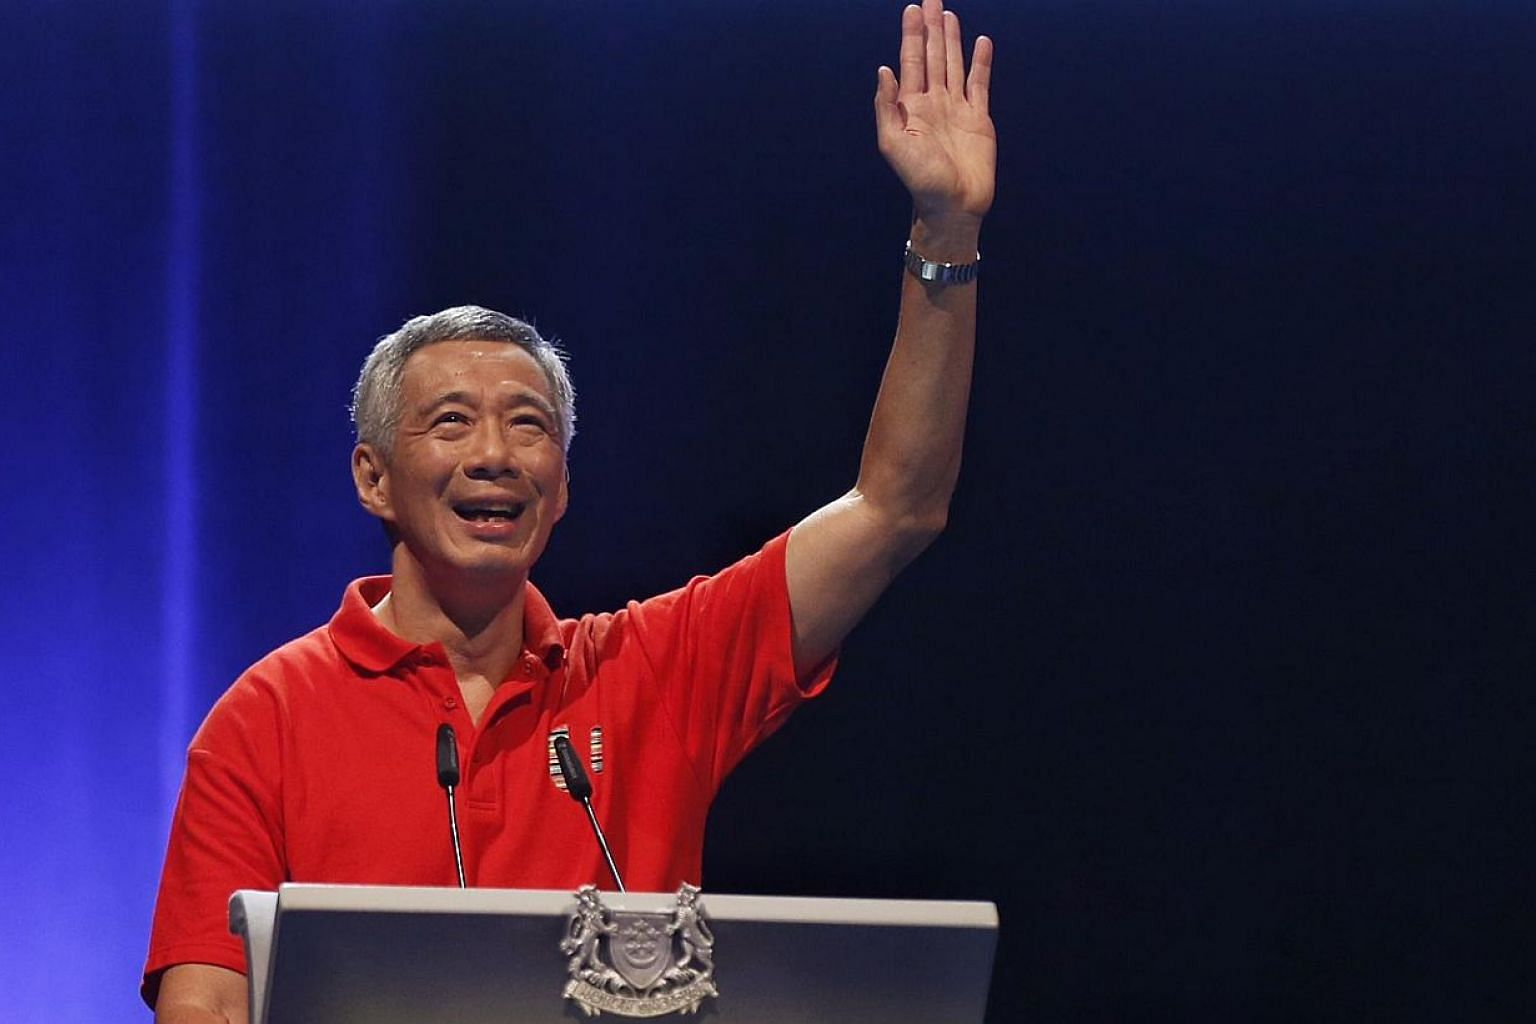 Prime Minister Lee Hsien Loong addressing some 4,000 union leaders, key representatives from the Labour Movement and tripartite partners at the National Trades Union Congress (NTUC) May Day Rally on May 1, 2015.-- PHOTO: KEVIN LIM